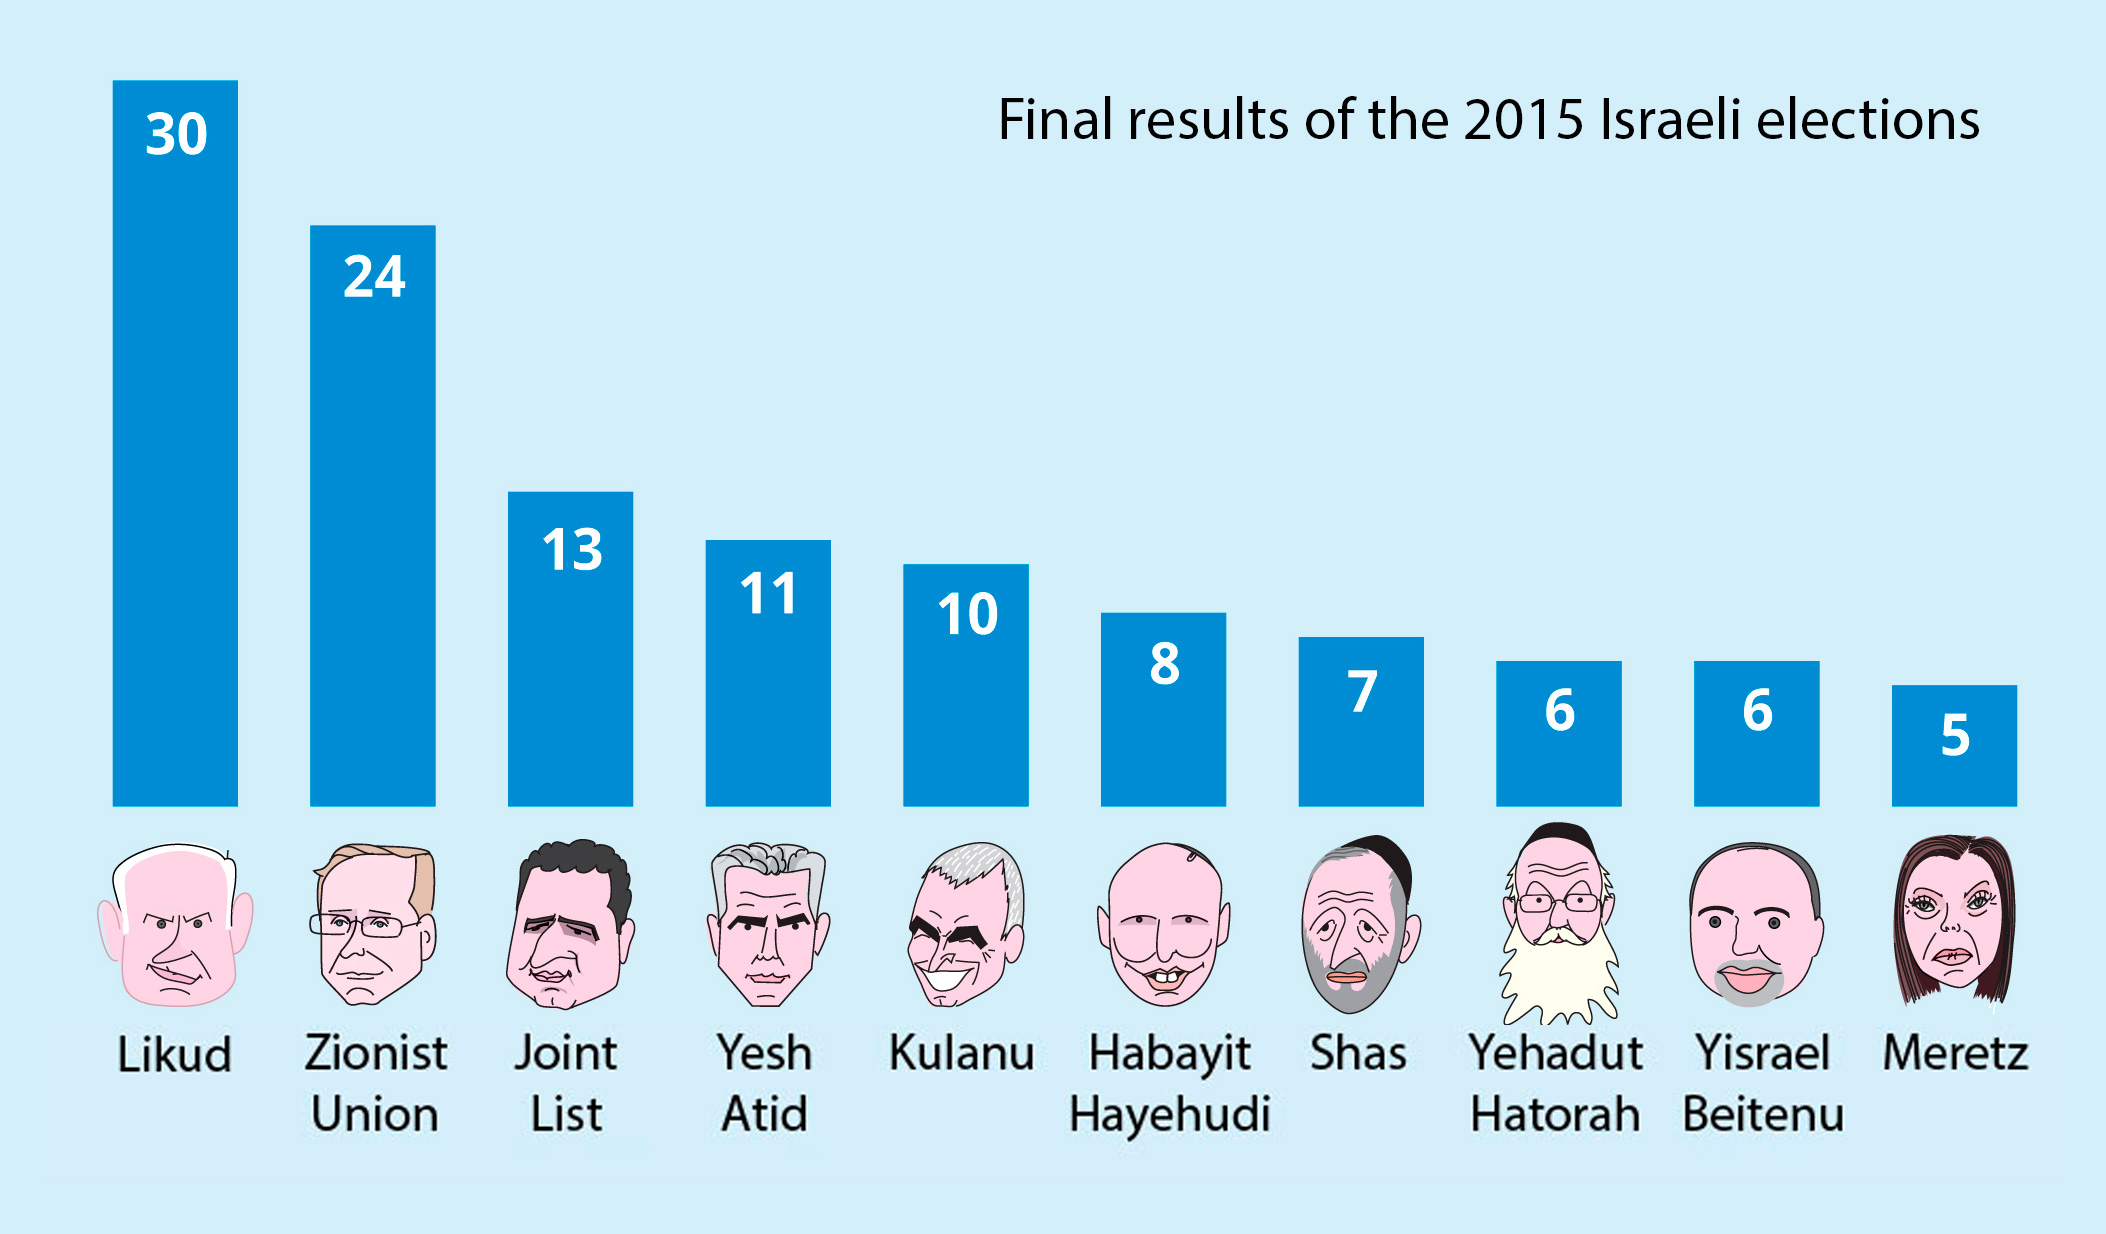 results of the 2015 Israeli elections